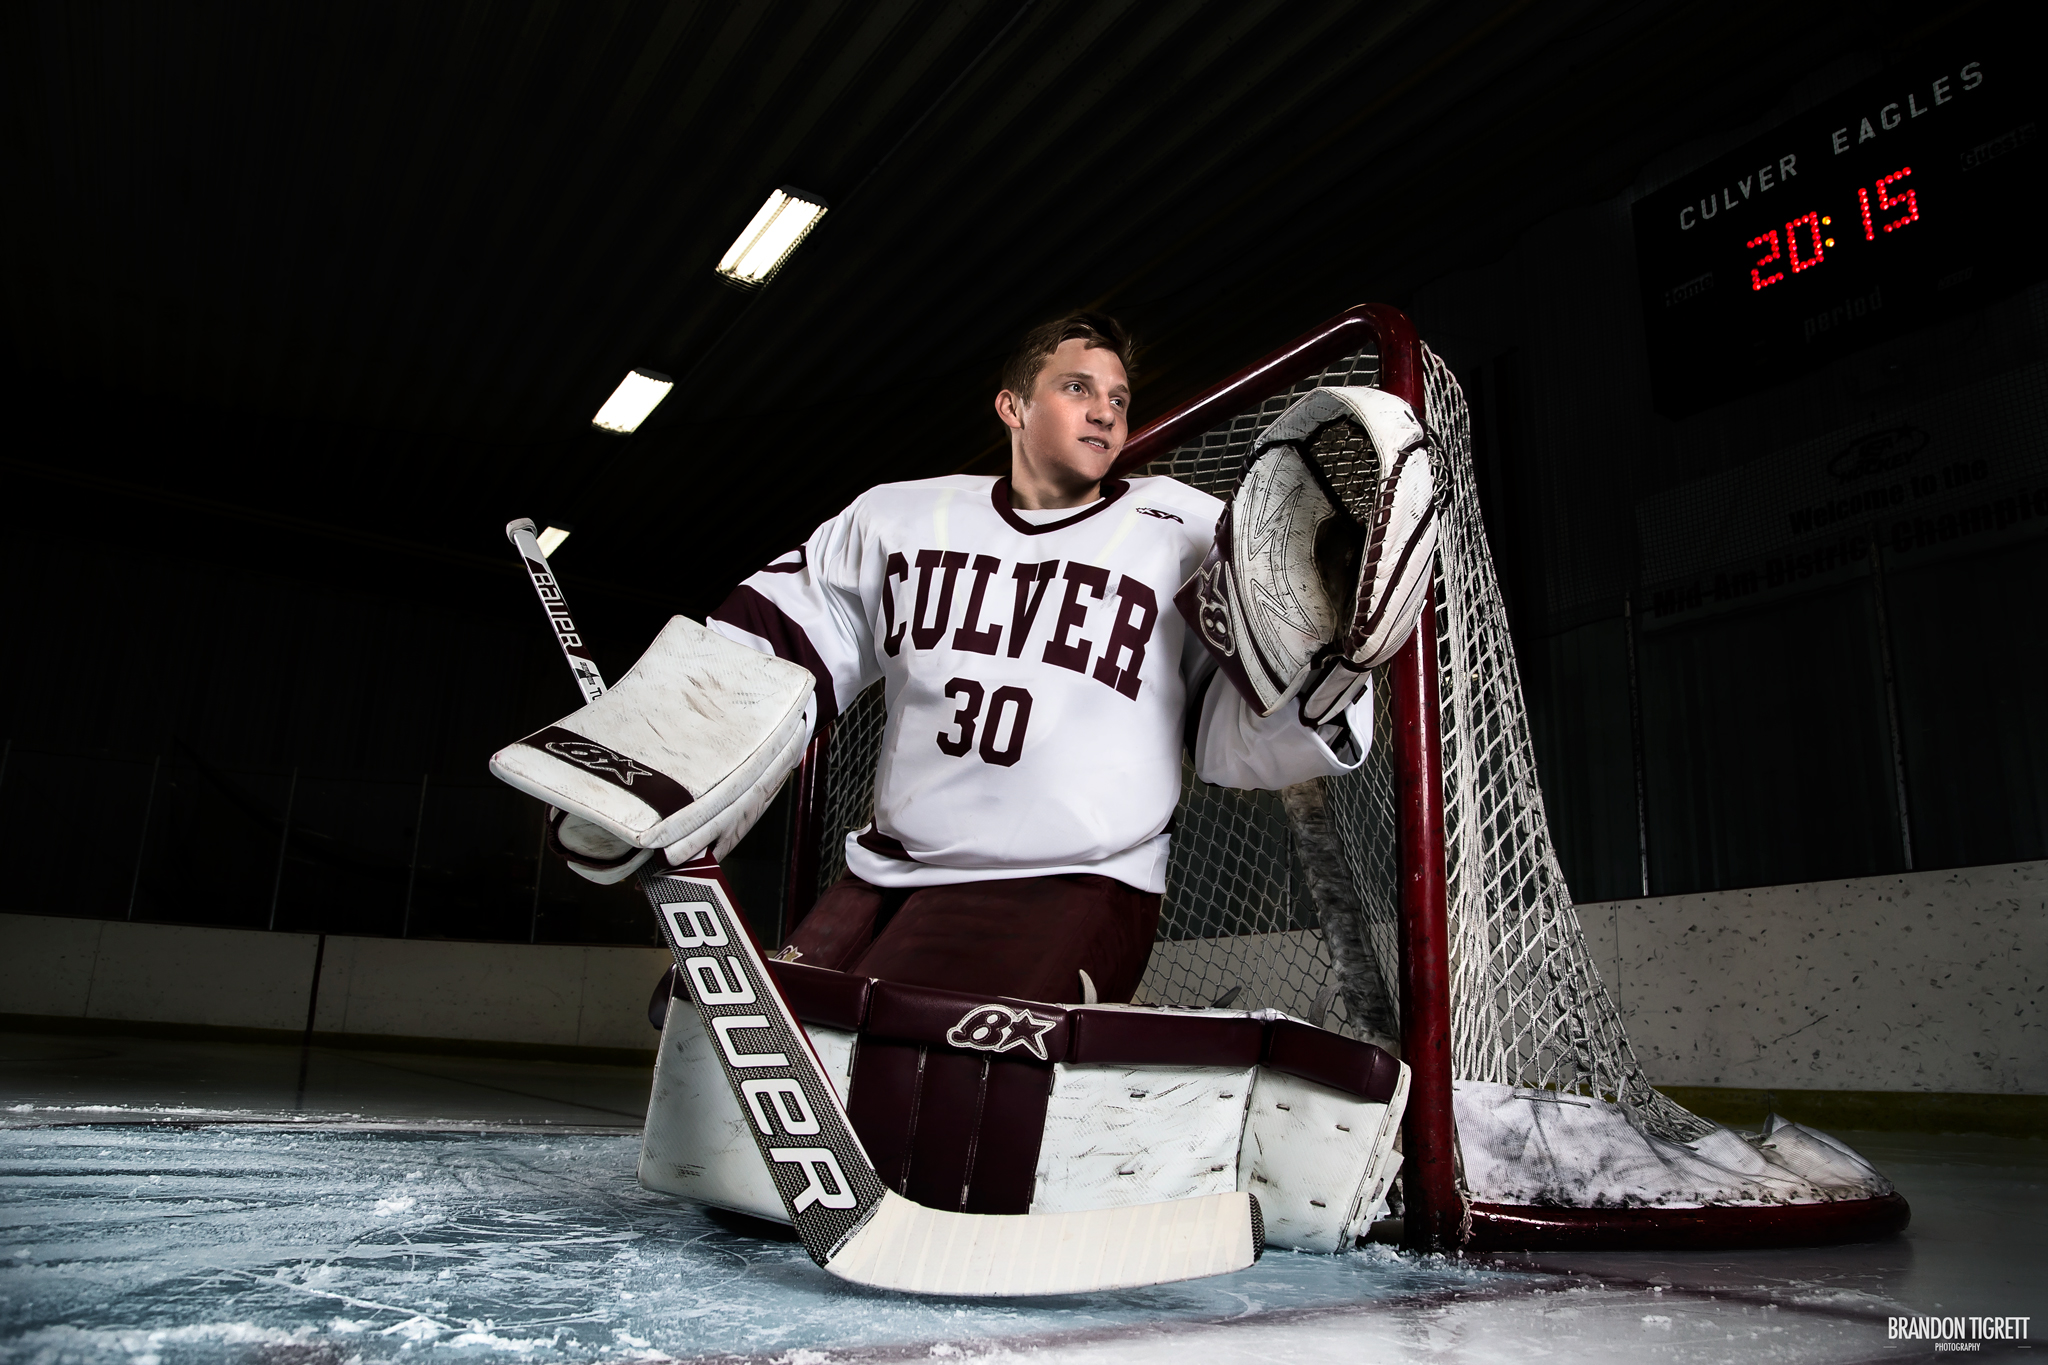 2014_Brandon-Tigrett_Scottsdale_Culver_Seniors_Hockey-159_Retouched_WEB.jpg